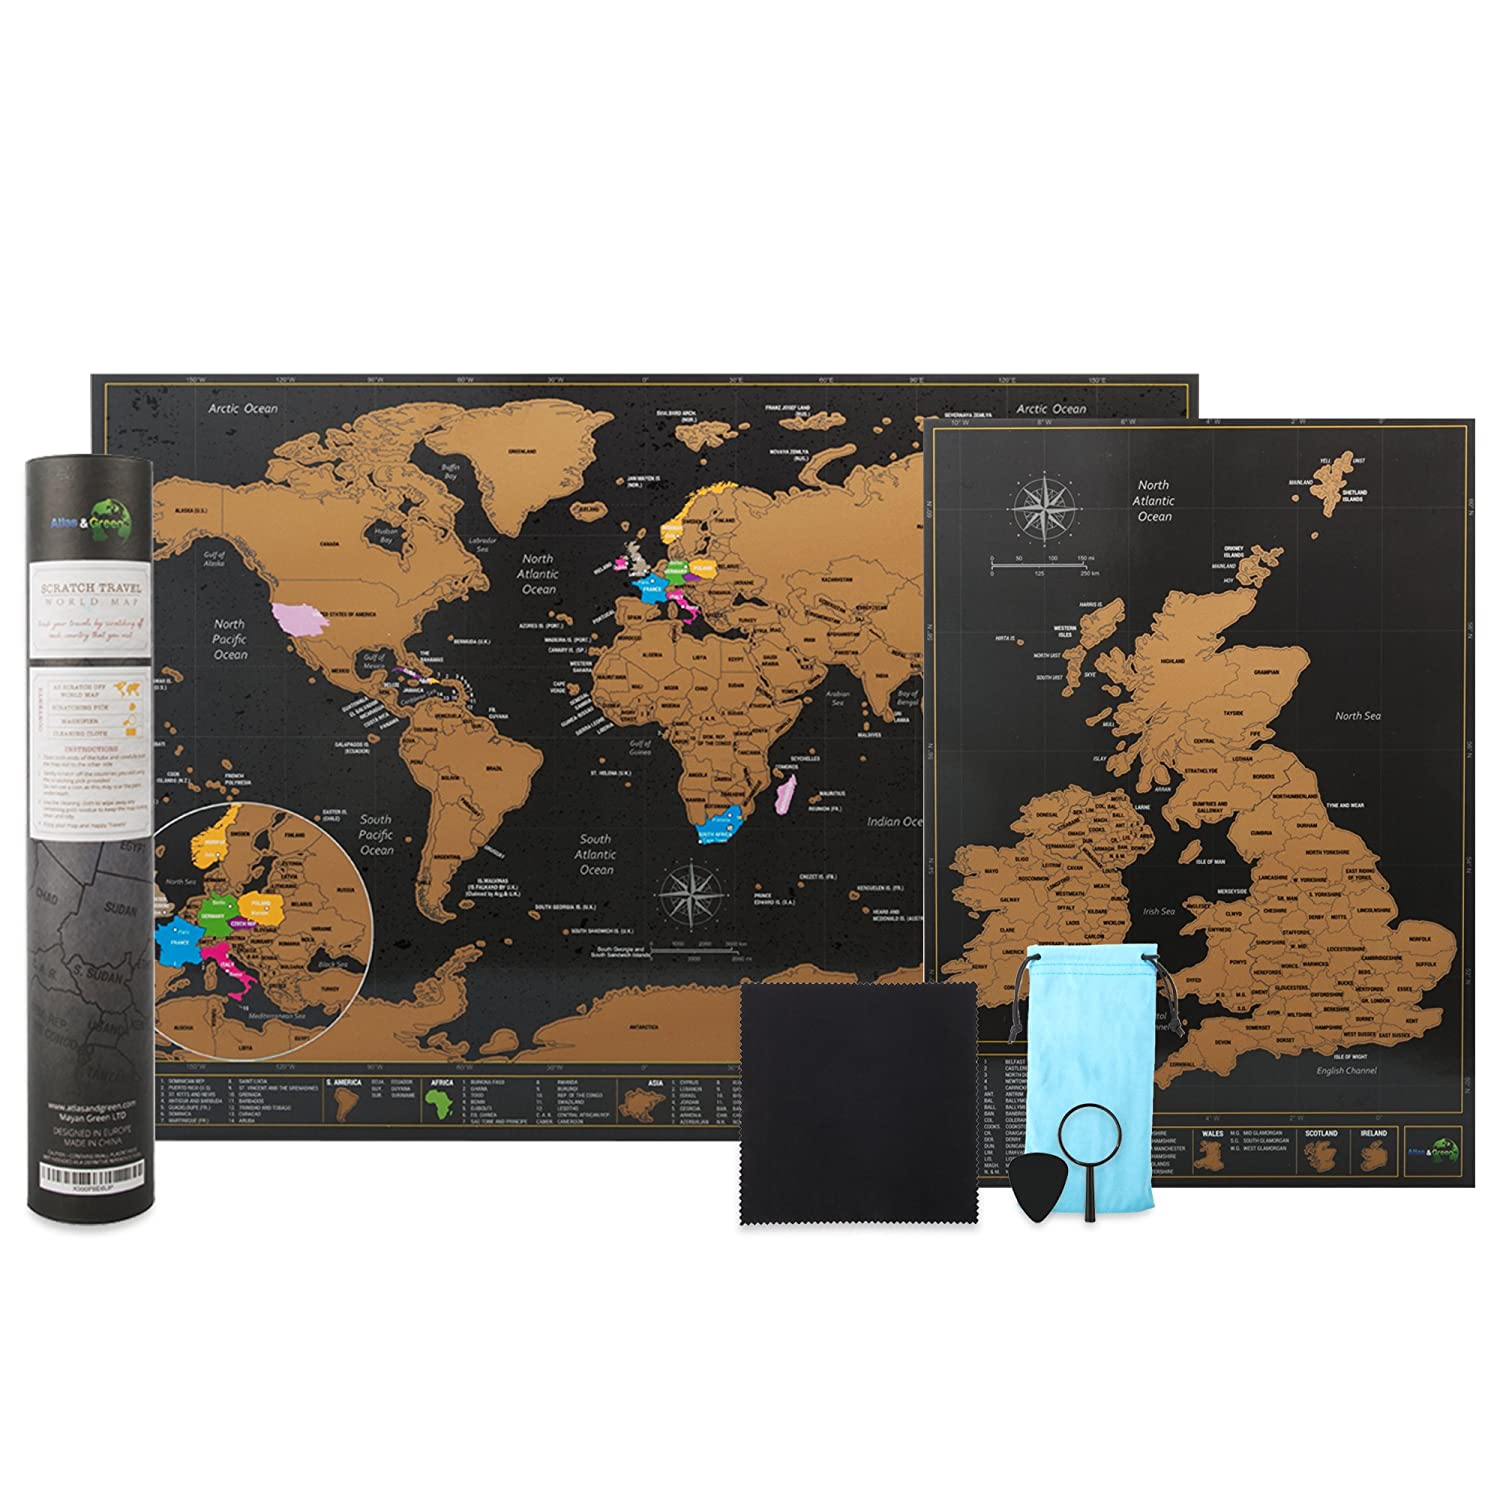 Scratch off world map a3 travel size 42 x 297cm bonus a4 uk map scratch off world map a3 travel size 42 x 297cm bonus a4 uk map with accessories kit and gift tube deluxe cartographic design by atlasgreen gumiabroncs Image collections